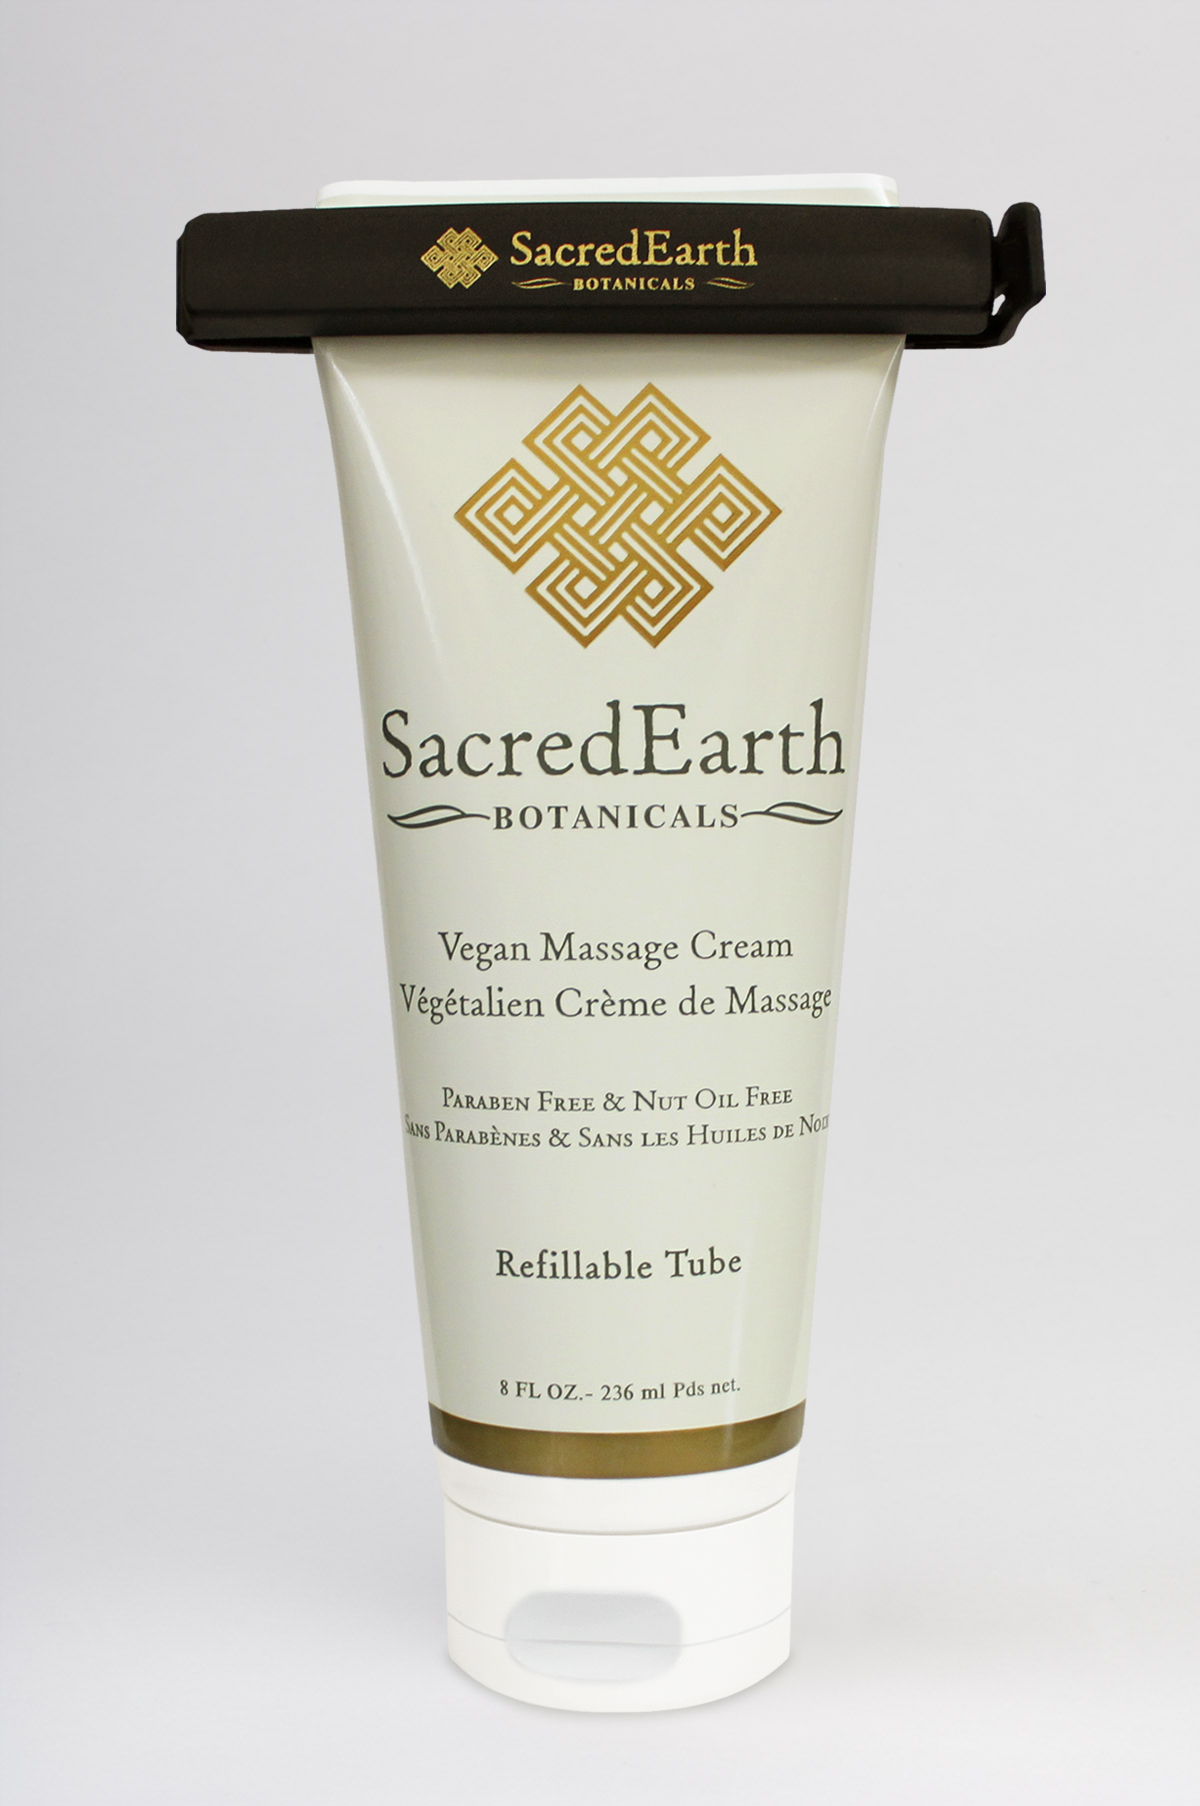 Sacred Earth's unscented mas